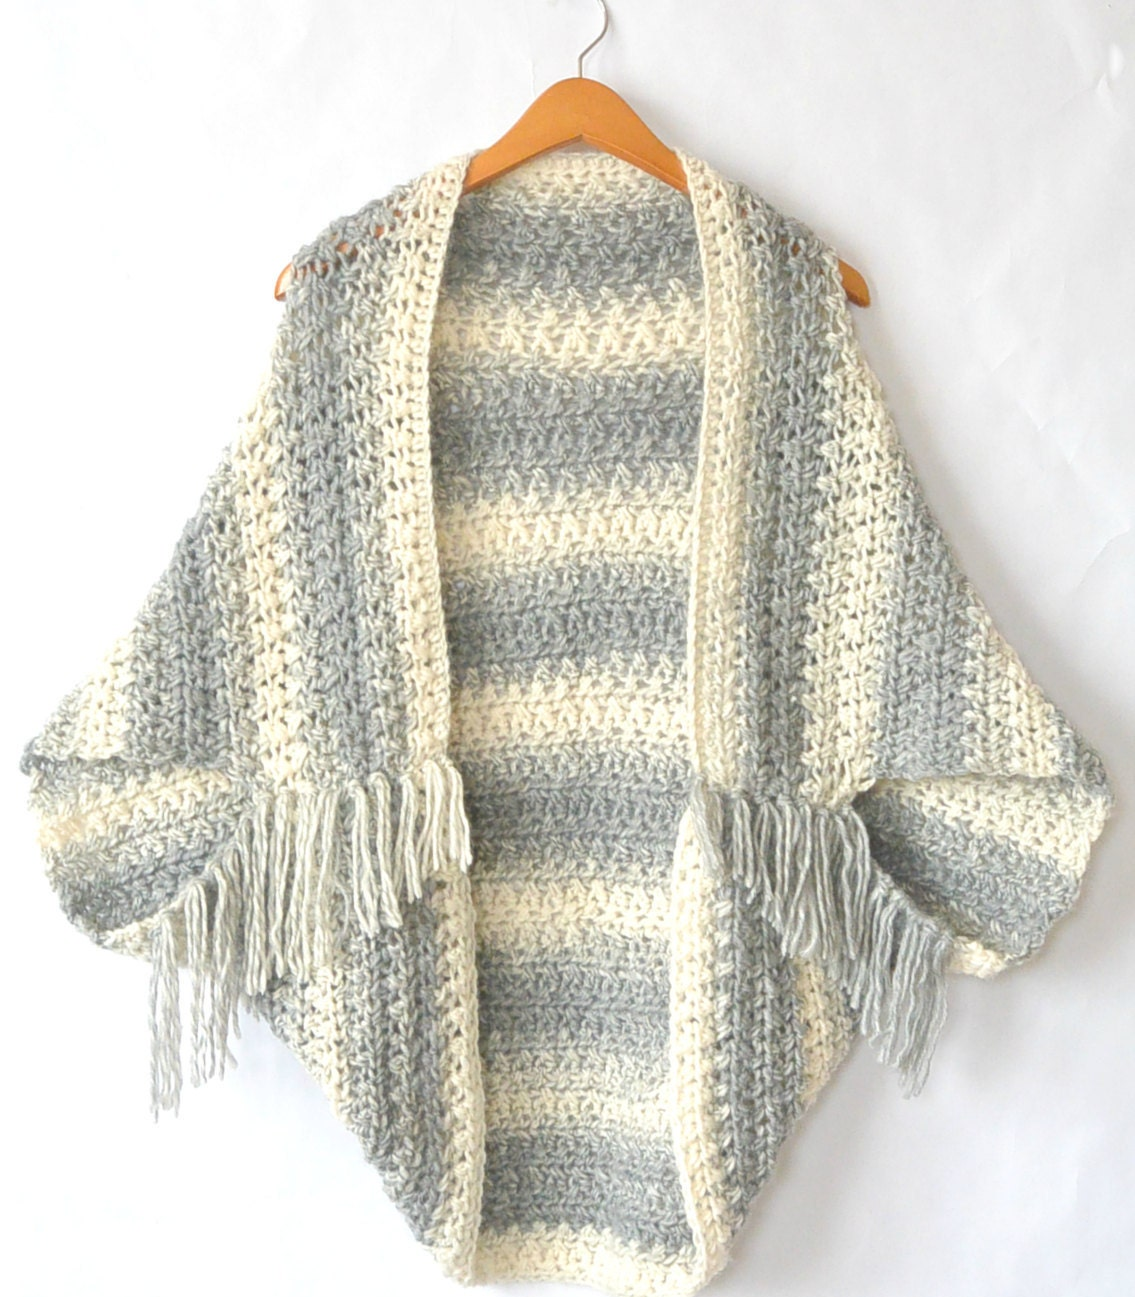 Easy Crocheted Sweater Cacoon Pattern Crocheted Shrug Etsy